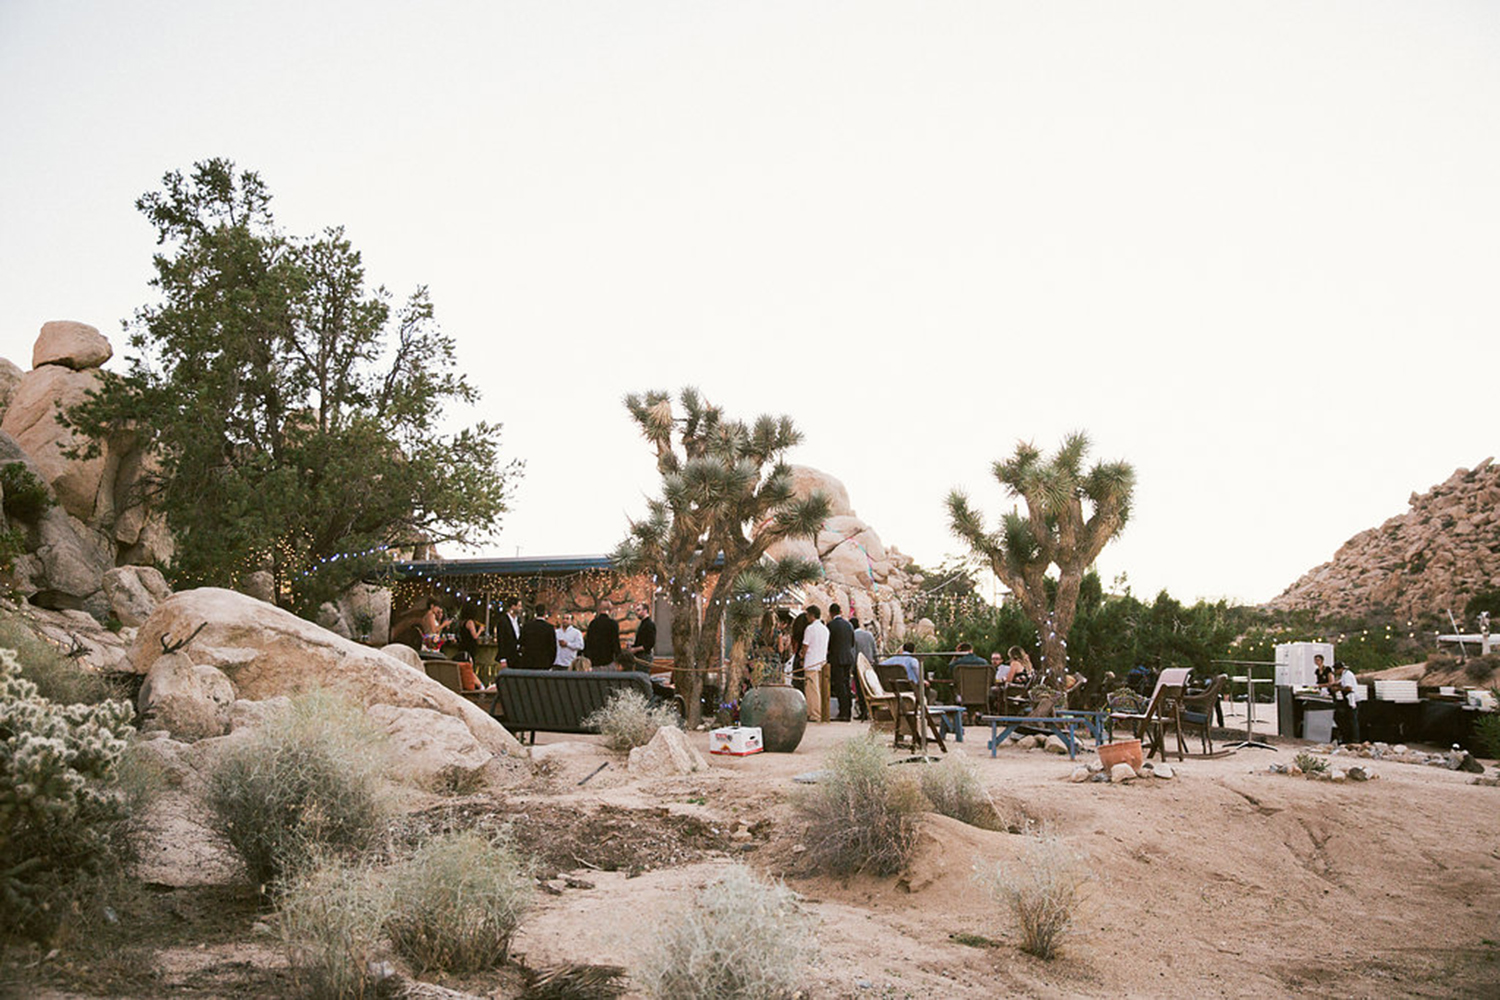 Kaede + Jason // Joshua Tree Wedding // Stefanie Vinsel Photography // Desert Boho Wedding Festival // Lucky Day Events Co. // Desert Wedding